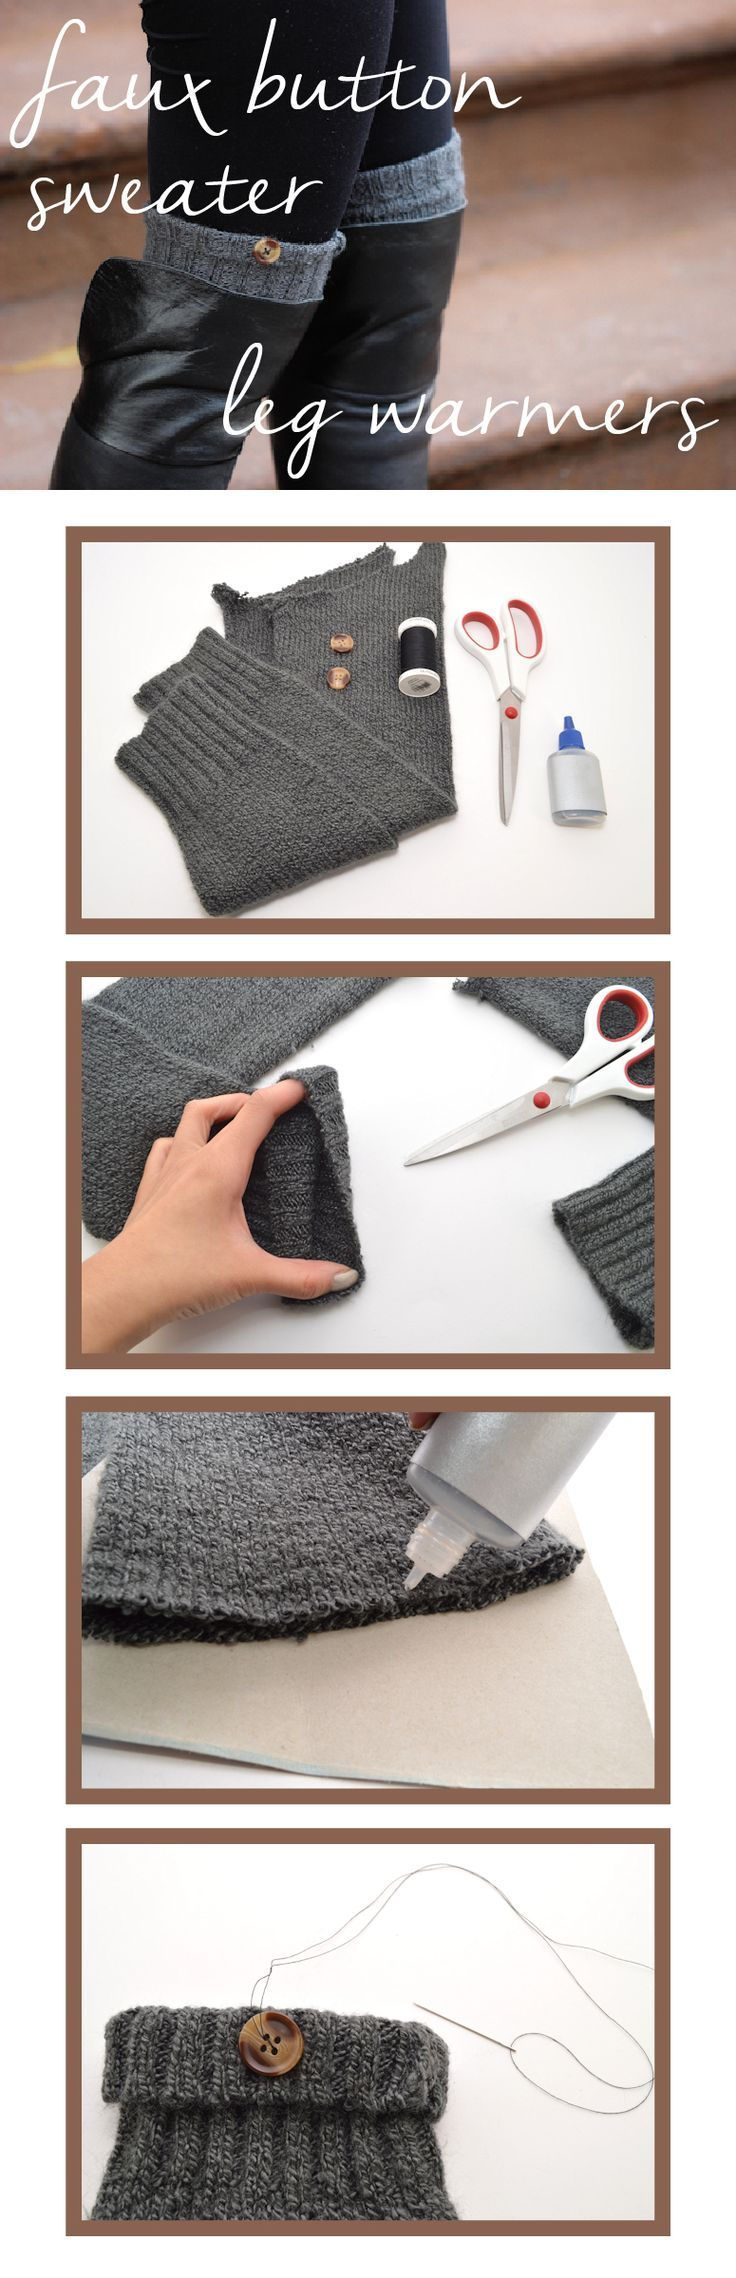 Simple DIY faux button sweater leg warmers that make great gifts! www.ehow.com/...